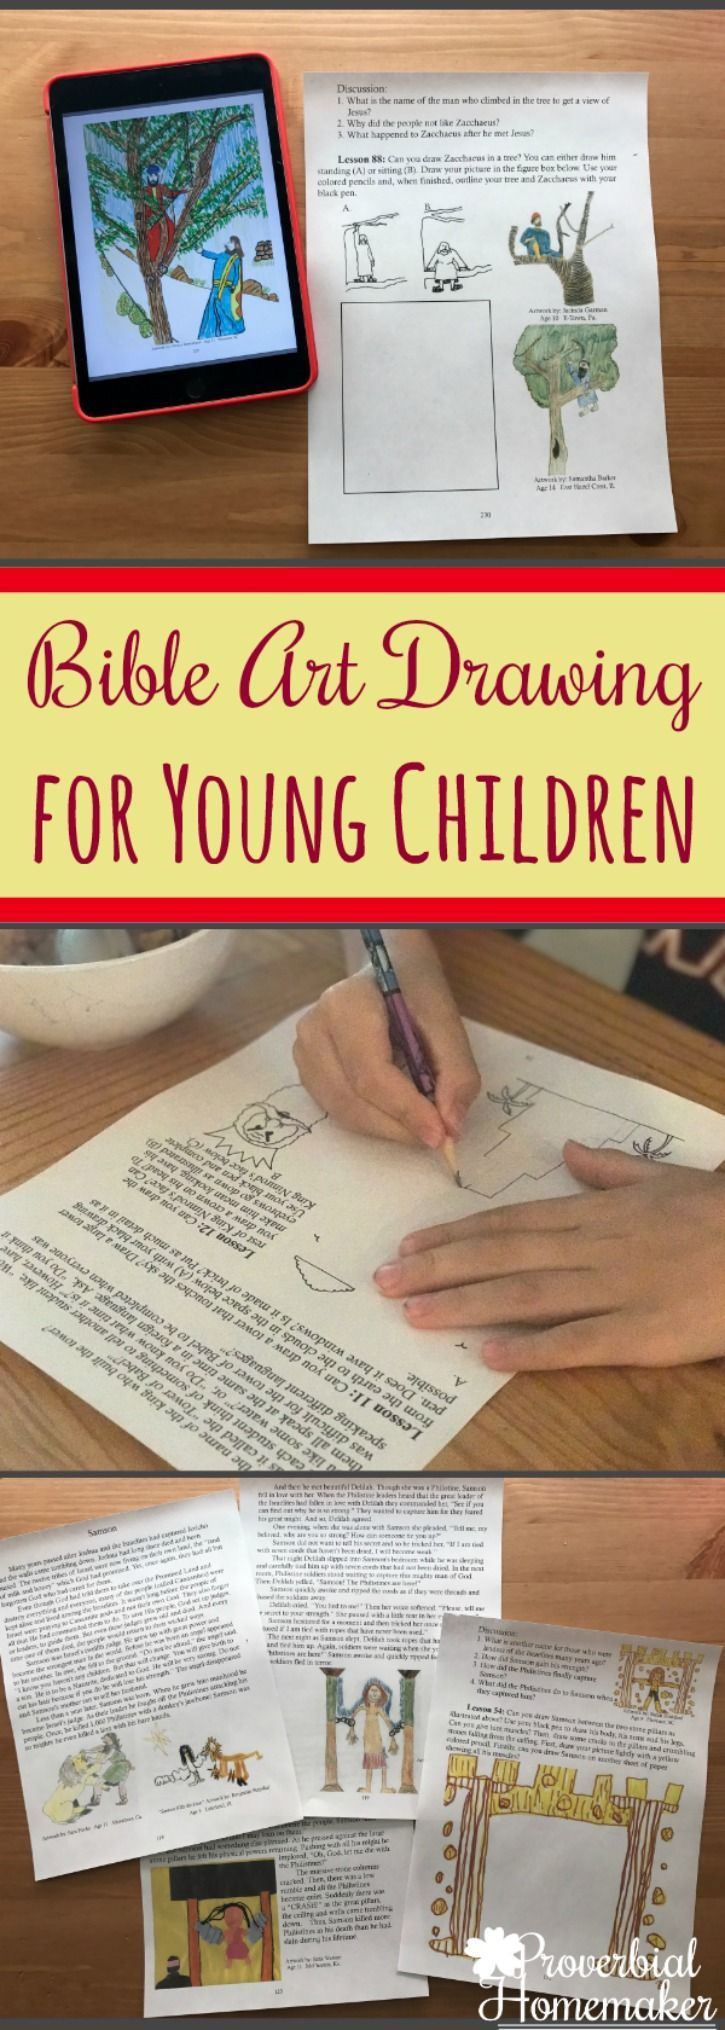 Looking for a simple way to teach young kids Bible? Add Bible art drawing for children to your homeschool or family devotions with How Great Thou Art!